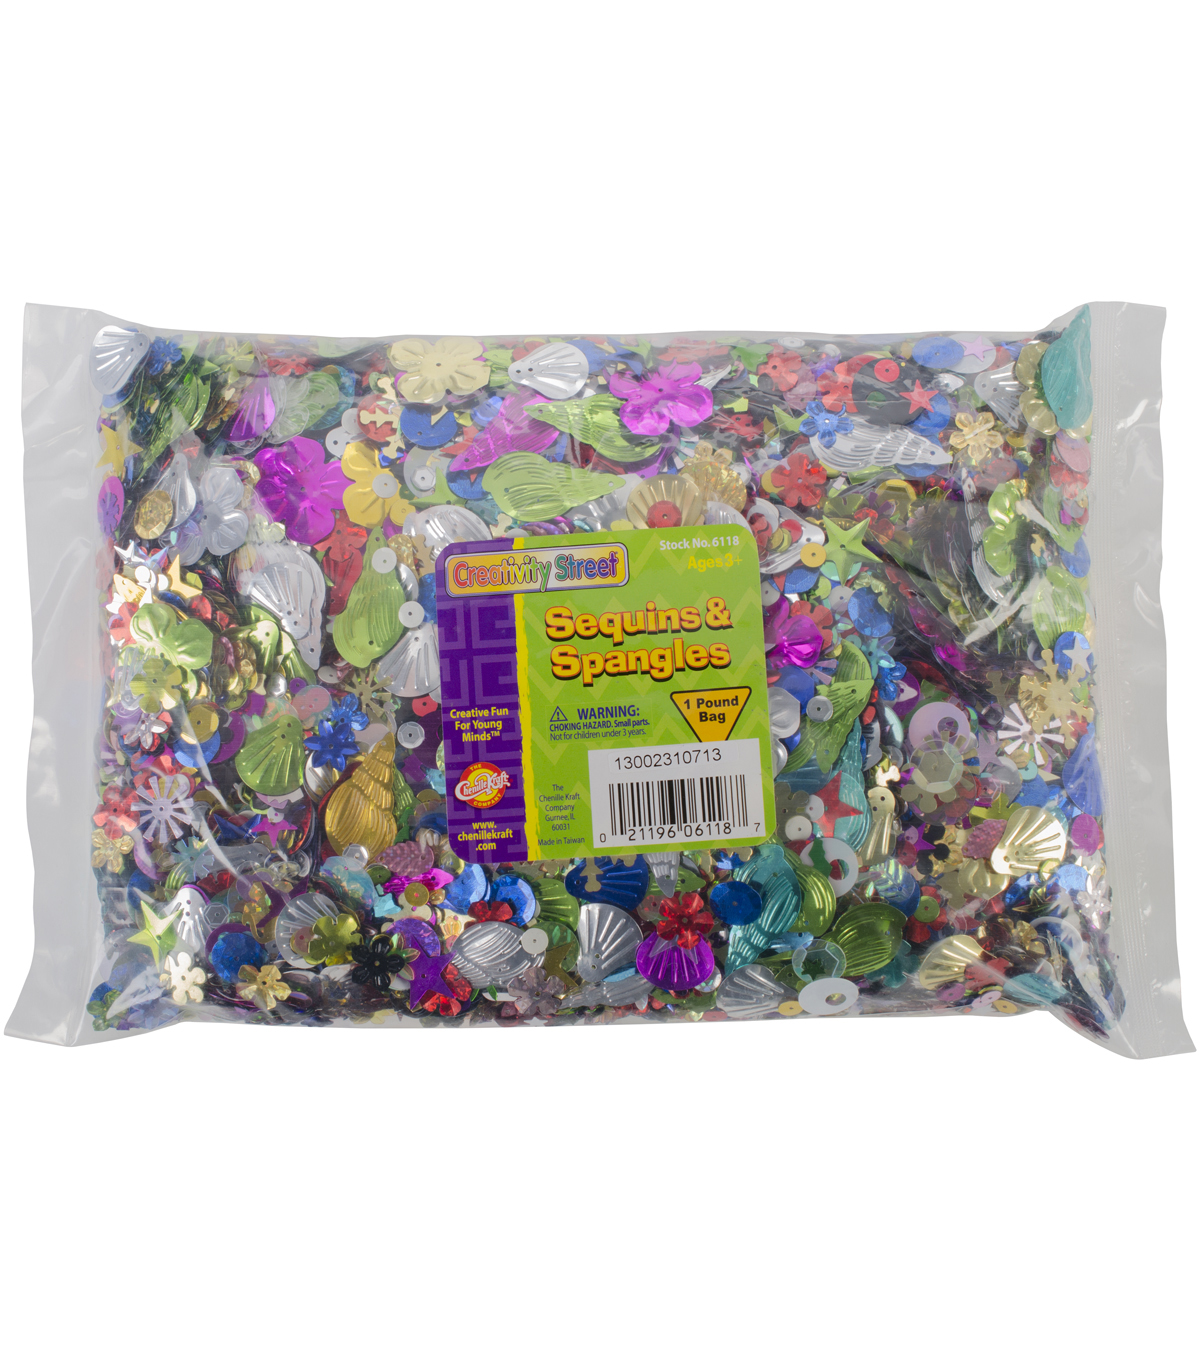 Sequins & Spangles 1lb Classroom Pack-Assorted Shapes & Colors